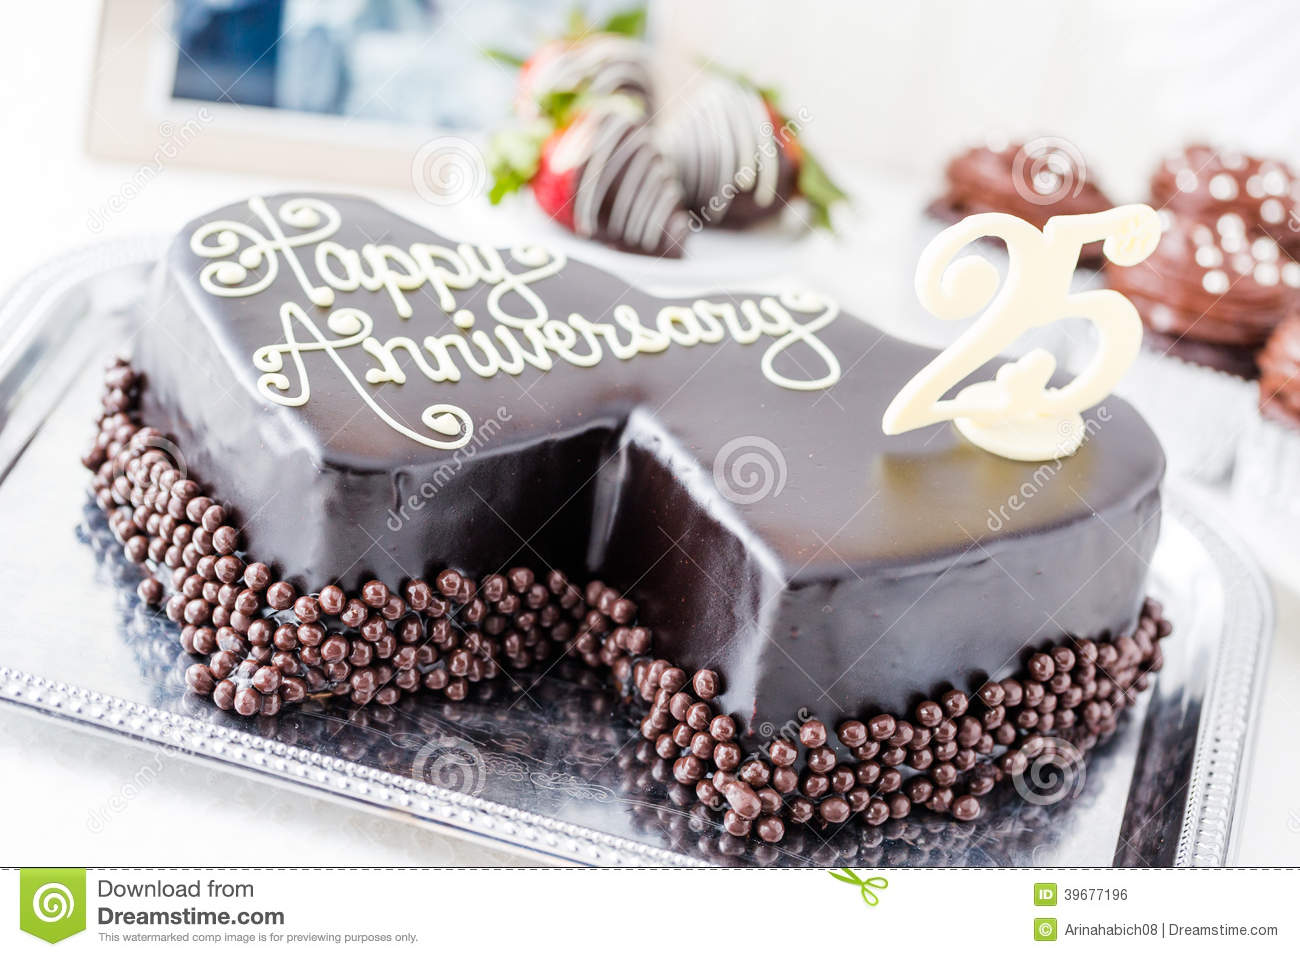 Anniversary Chocolate Cake Design : Wedding anniversary stock photo. Image of celebration ...